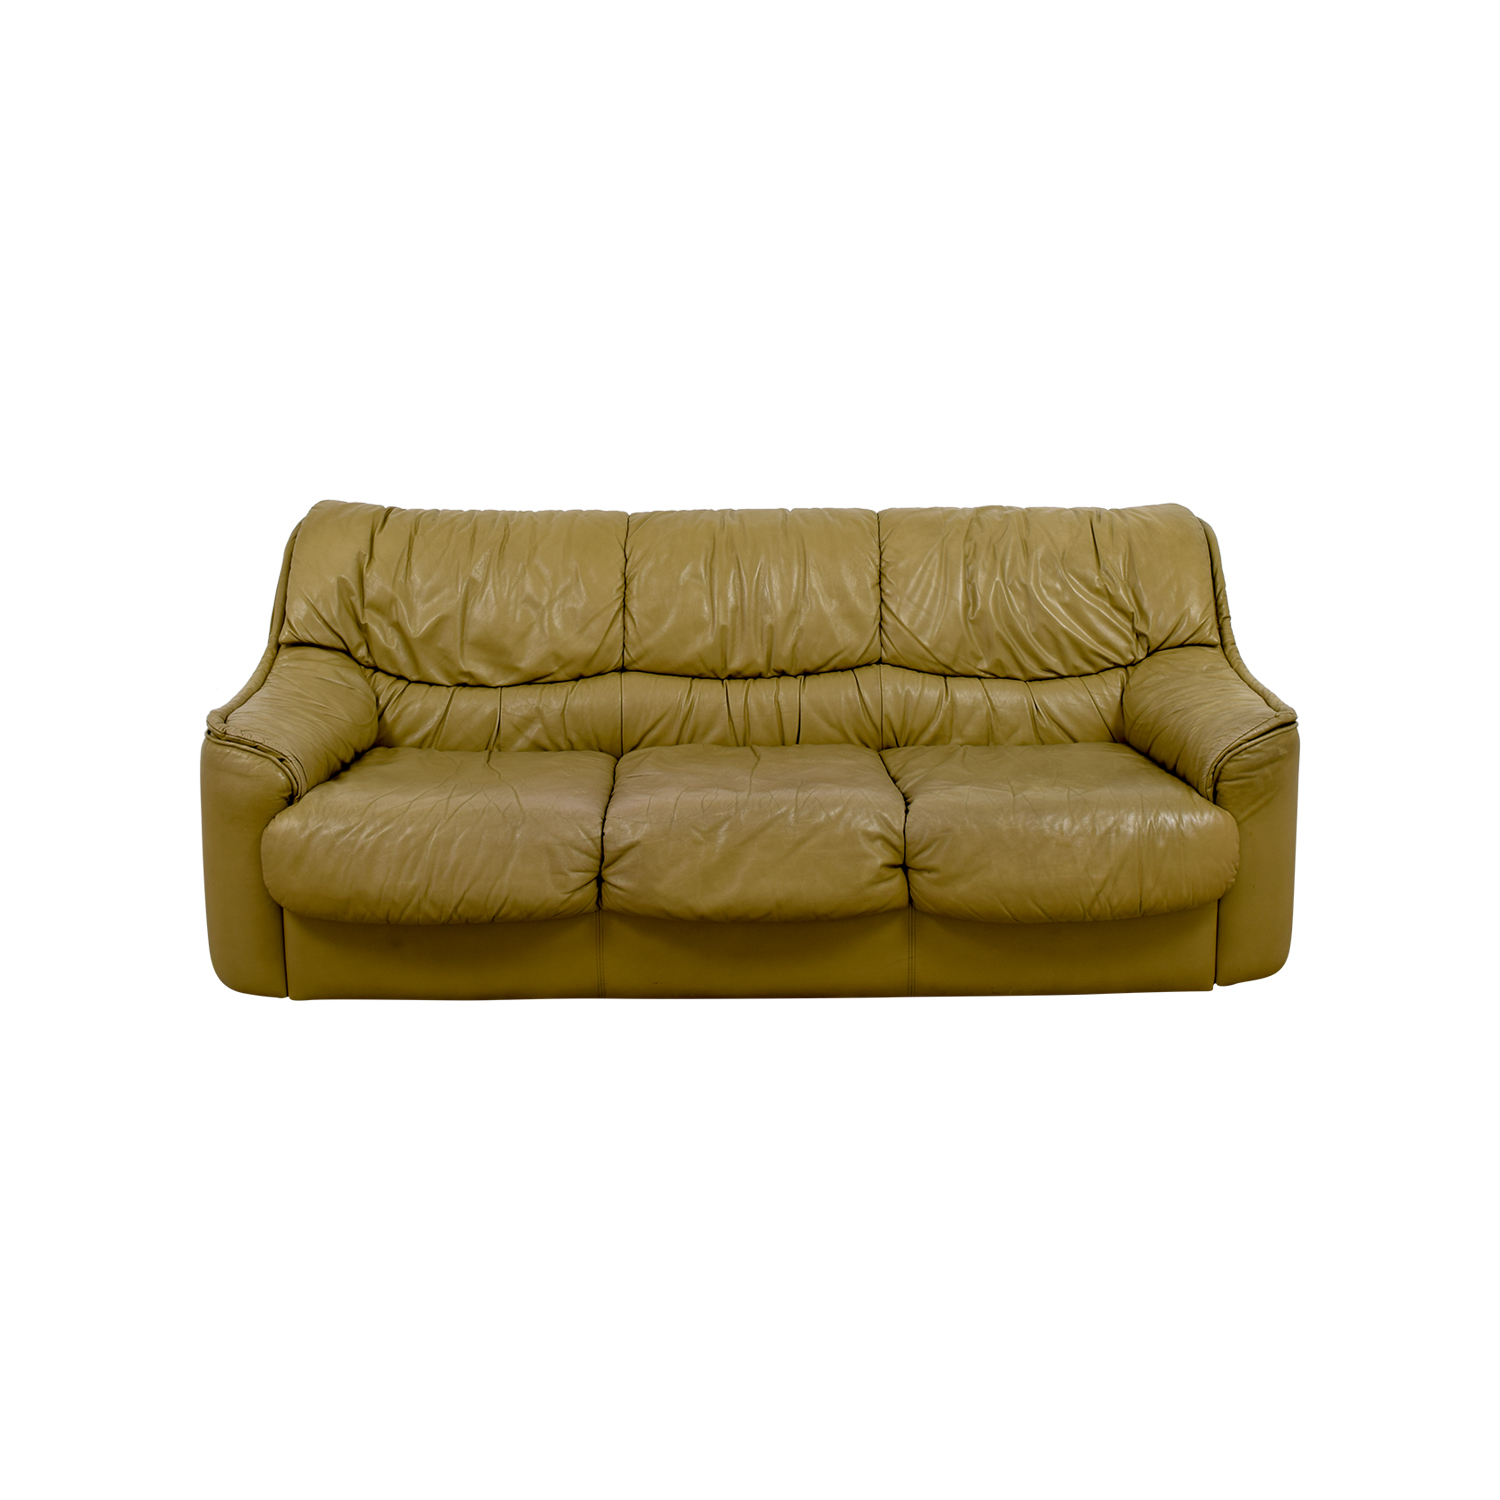 shop Beige Leather Sofa online